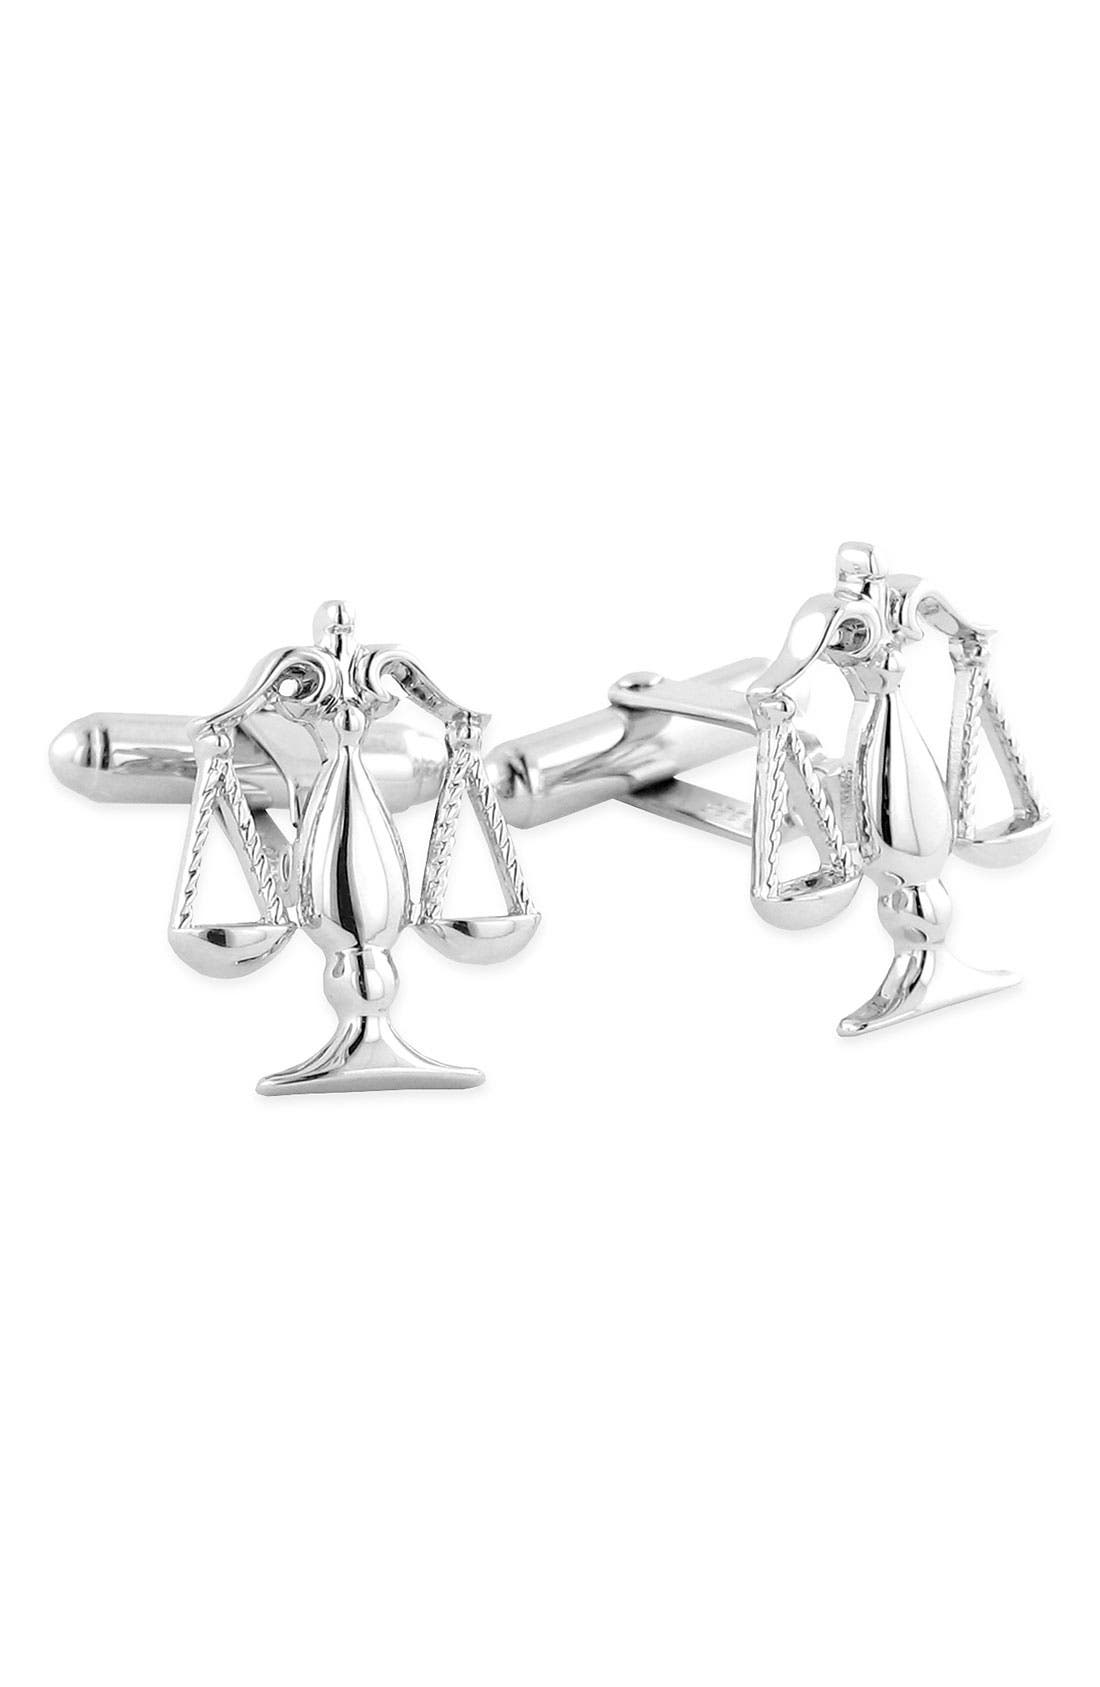 David Donahue 'Scales of Justice' Cuff Links